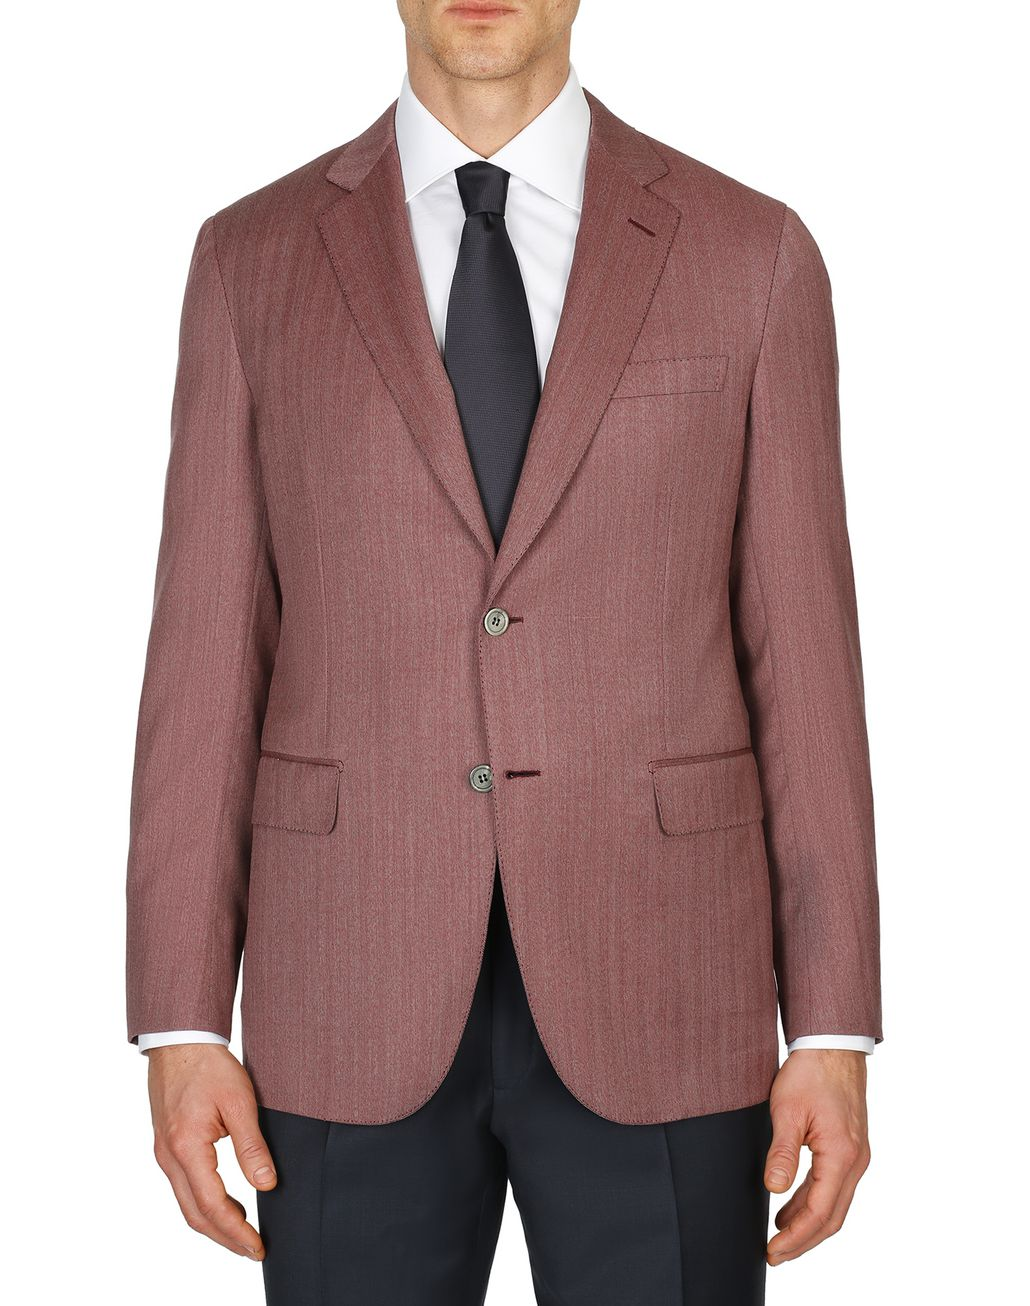 BRIONI Veste Plume à chevrons bordeaux Suits & Jackets Homme r